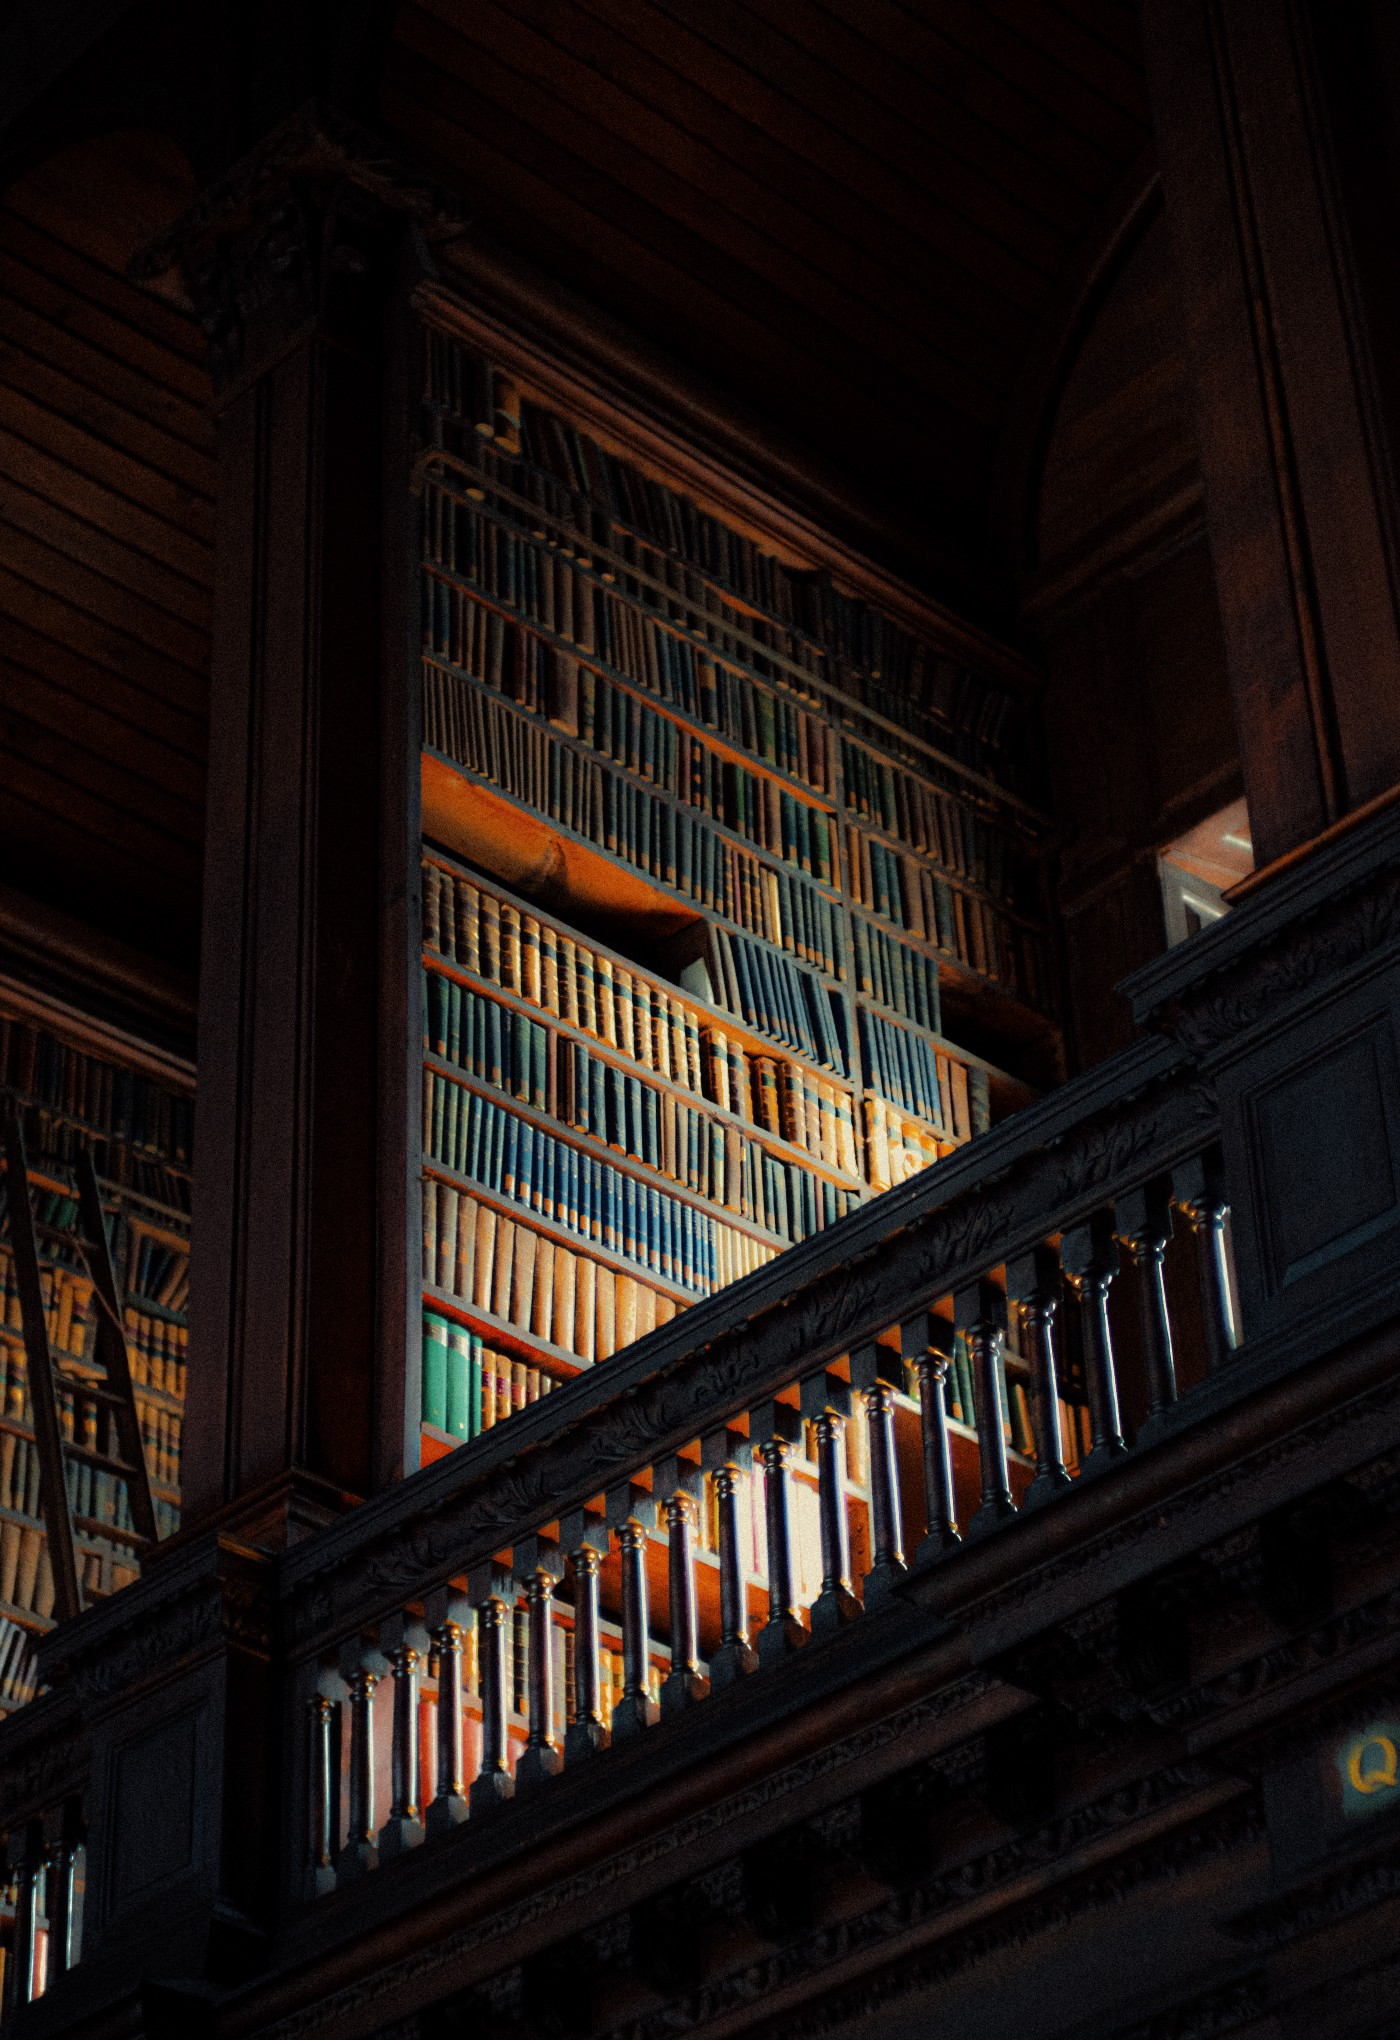 library shelves in the dark of night